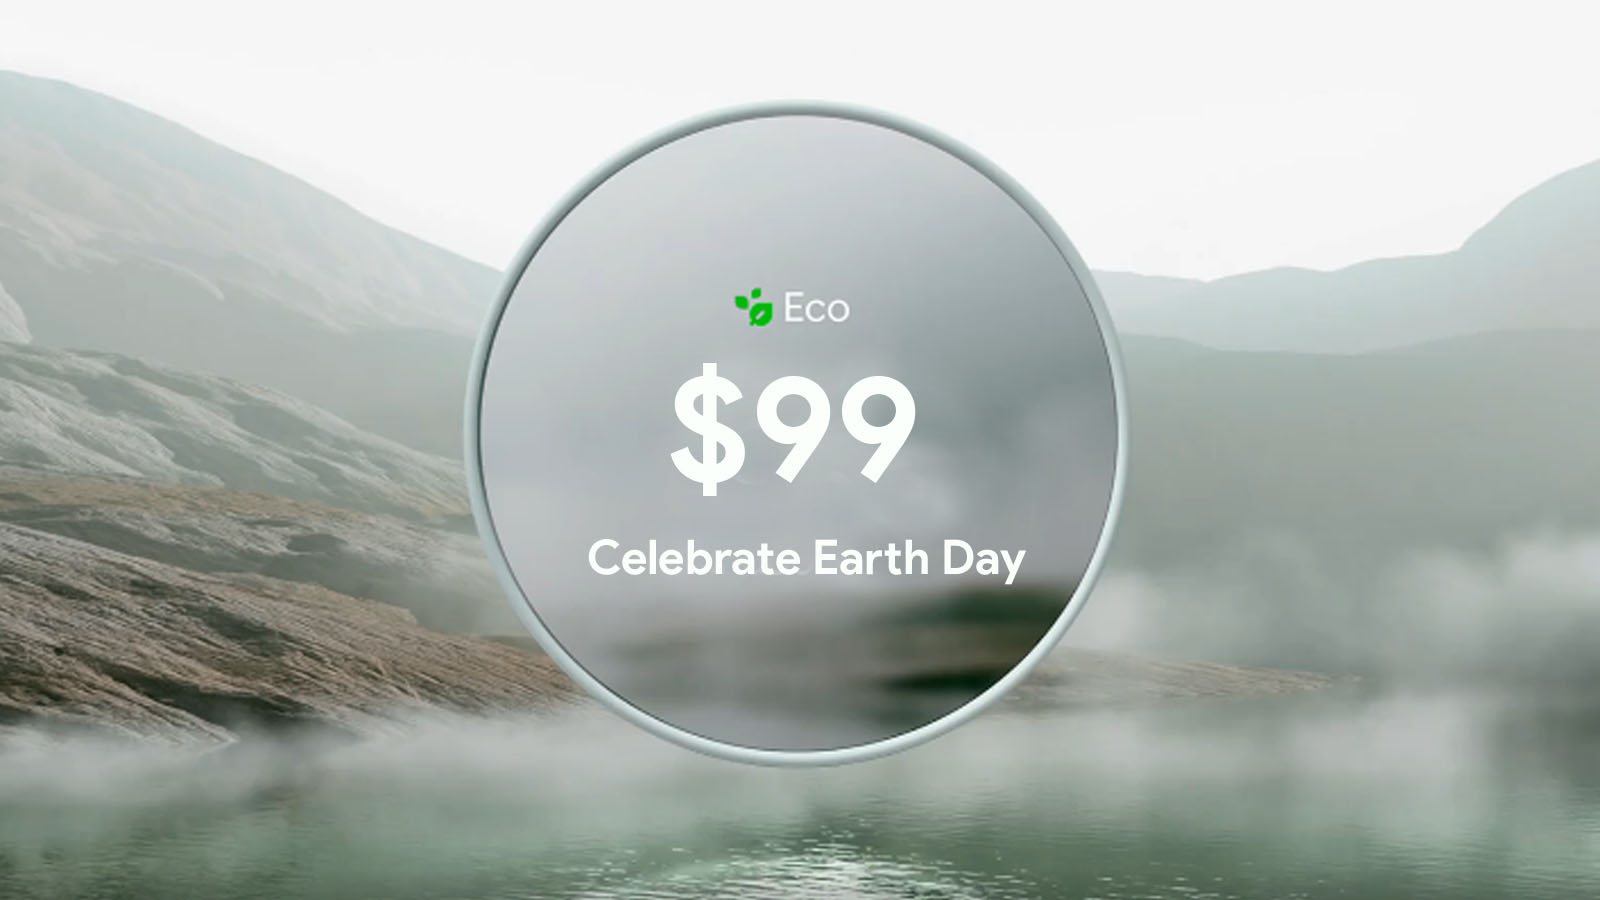 Grab the new eco-friendly Nest Thermostat for just $99 to celebrate Earth Day